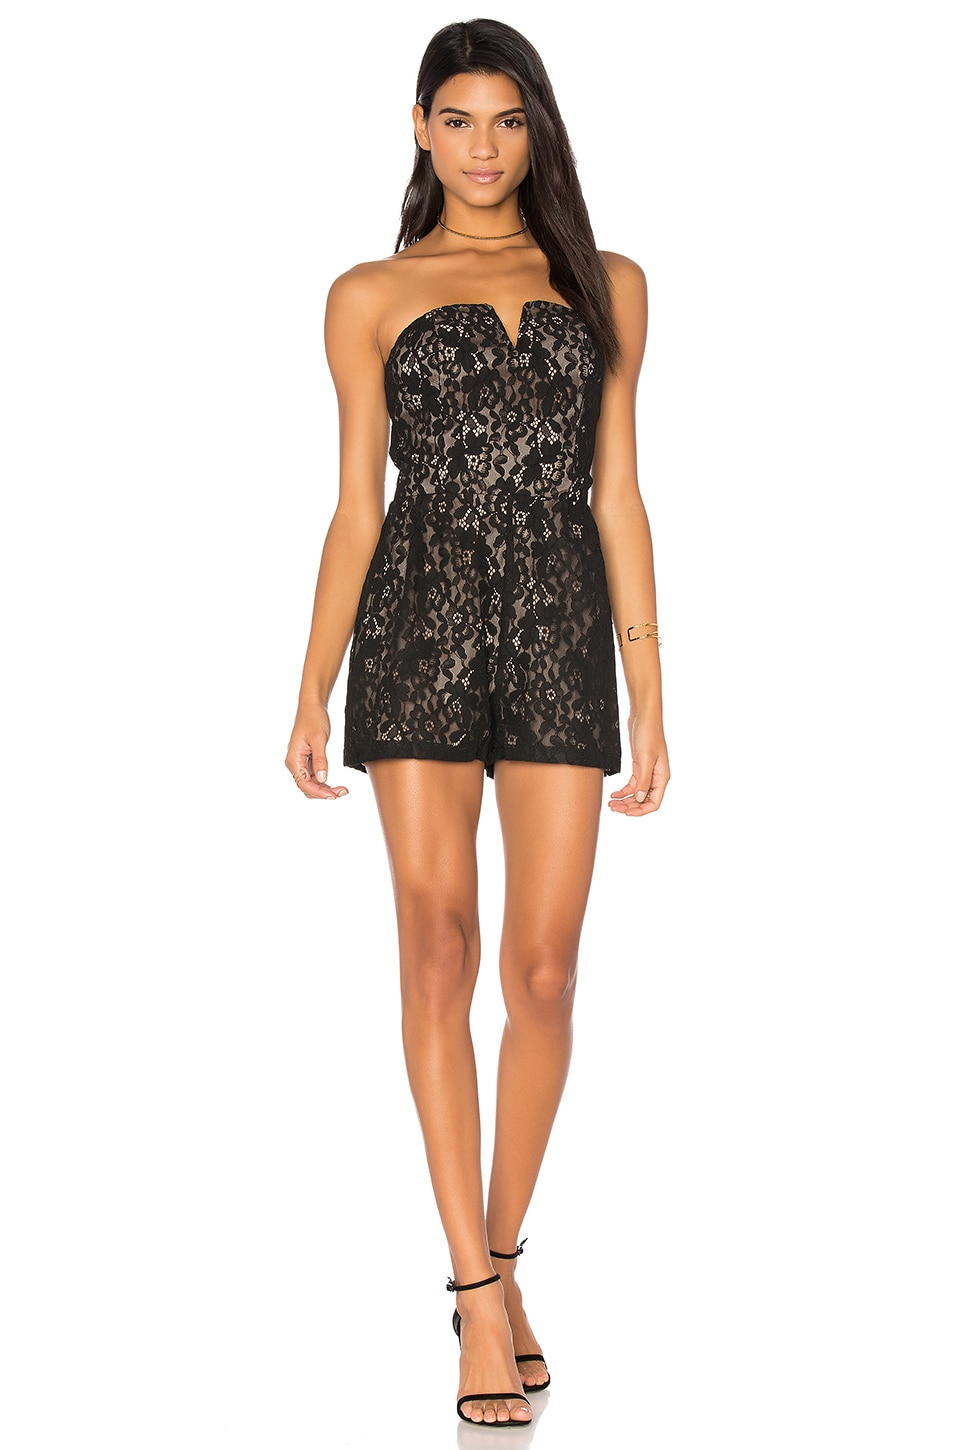 Strapless Romper by J.O.A.